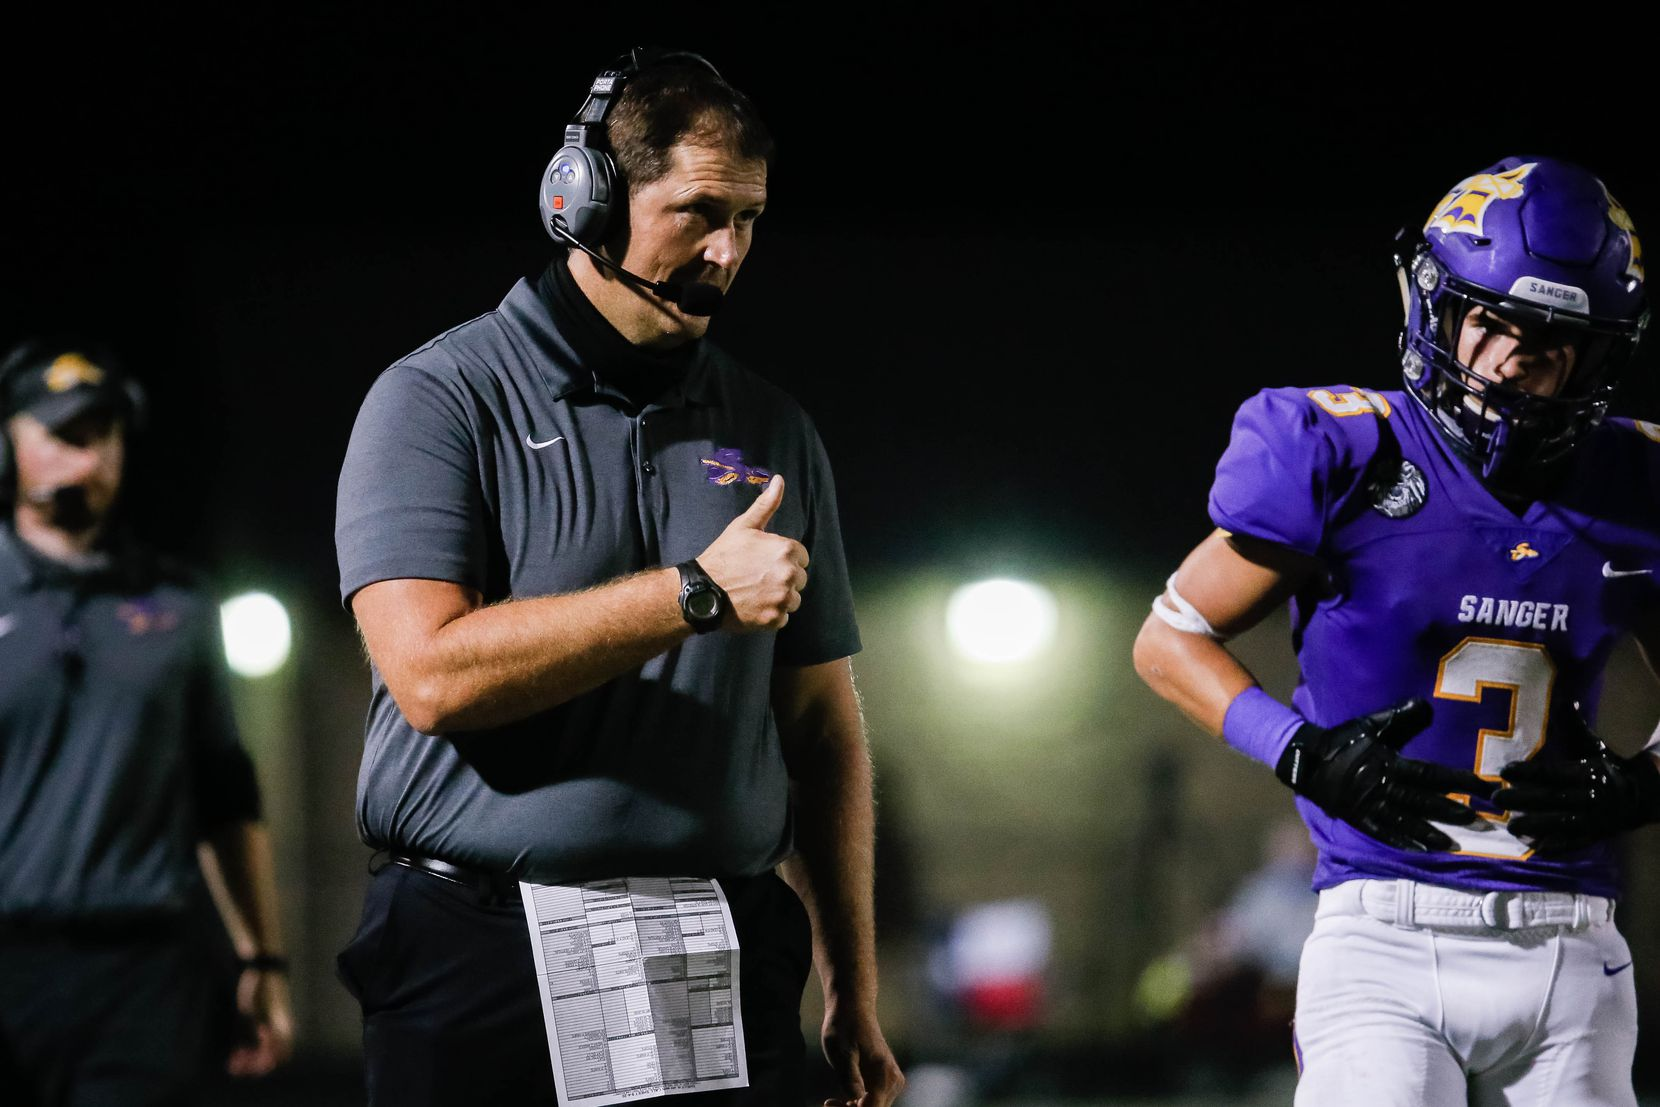 Sanger High School football head coach Rocky Smart gives a thumbs up during a game against Lake Worth High School in the second half on Sept. 4, 2020 in Sanger. Sanger won 49-35. (Juan Figueroa/ The Dallas Morning News)